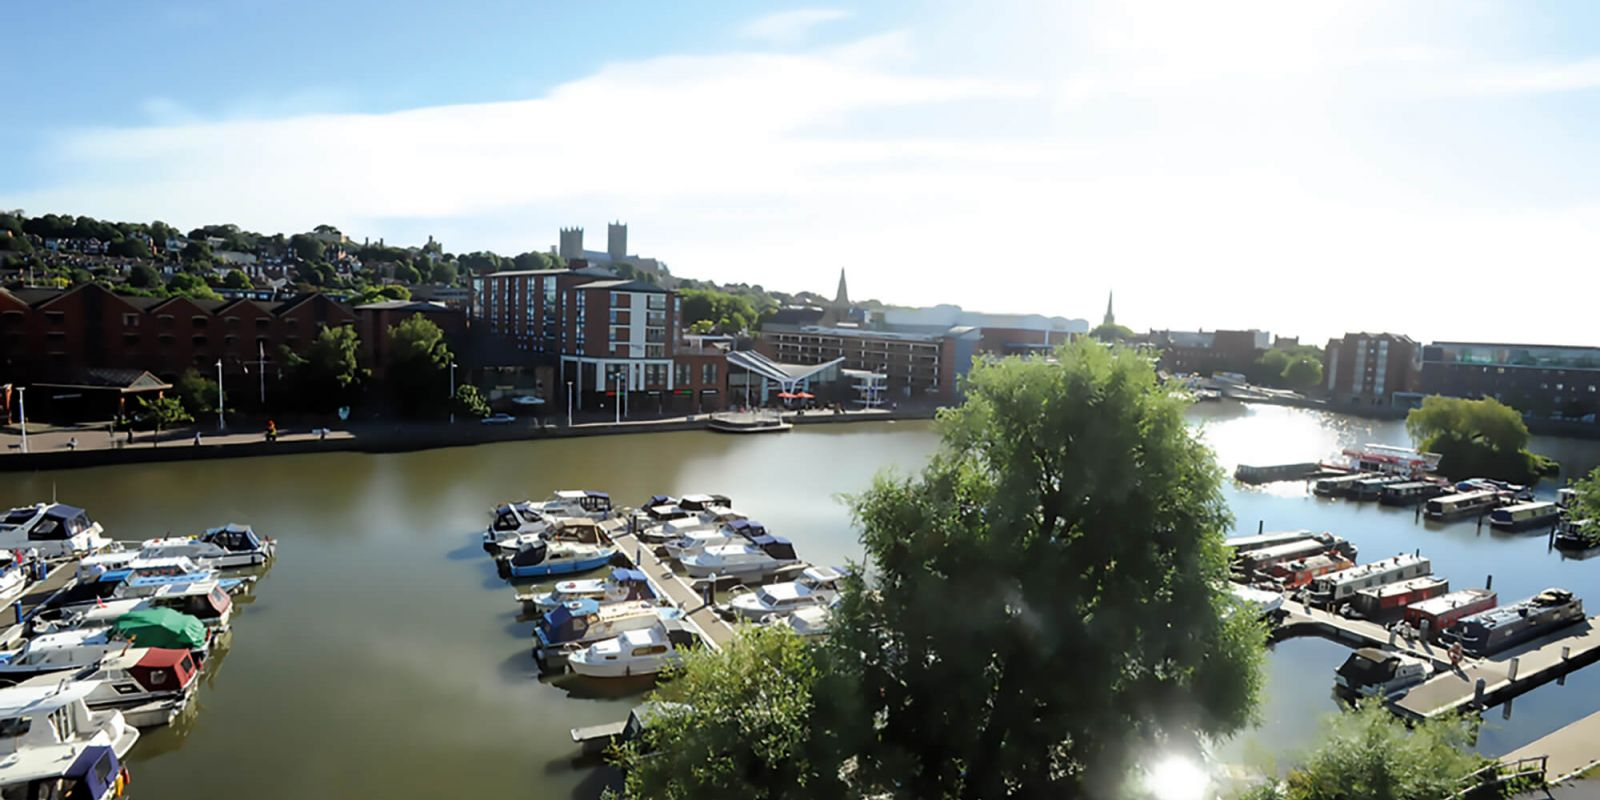 Lincoln Brayford waterfront and University